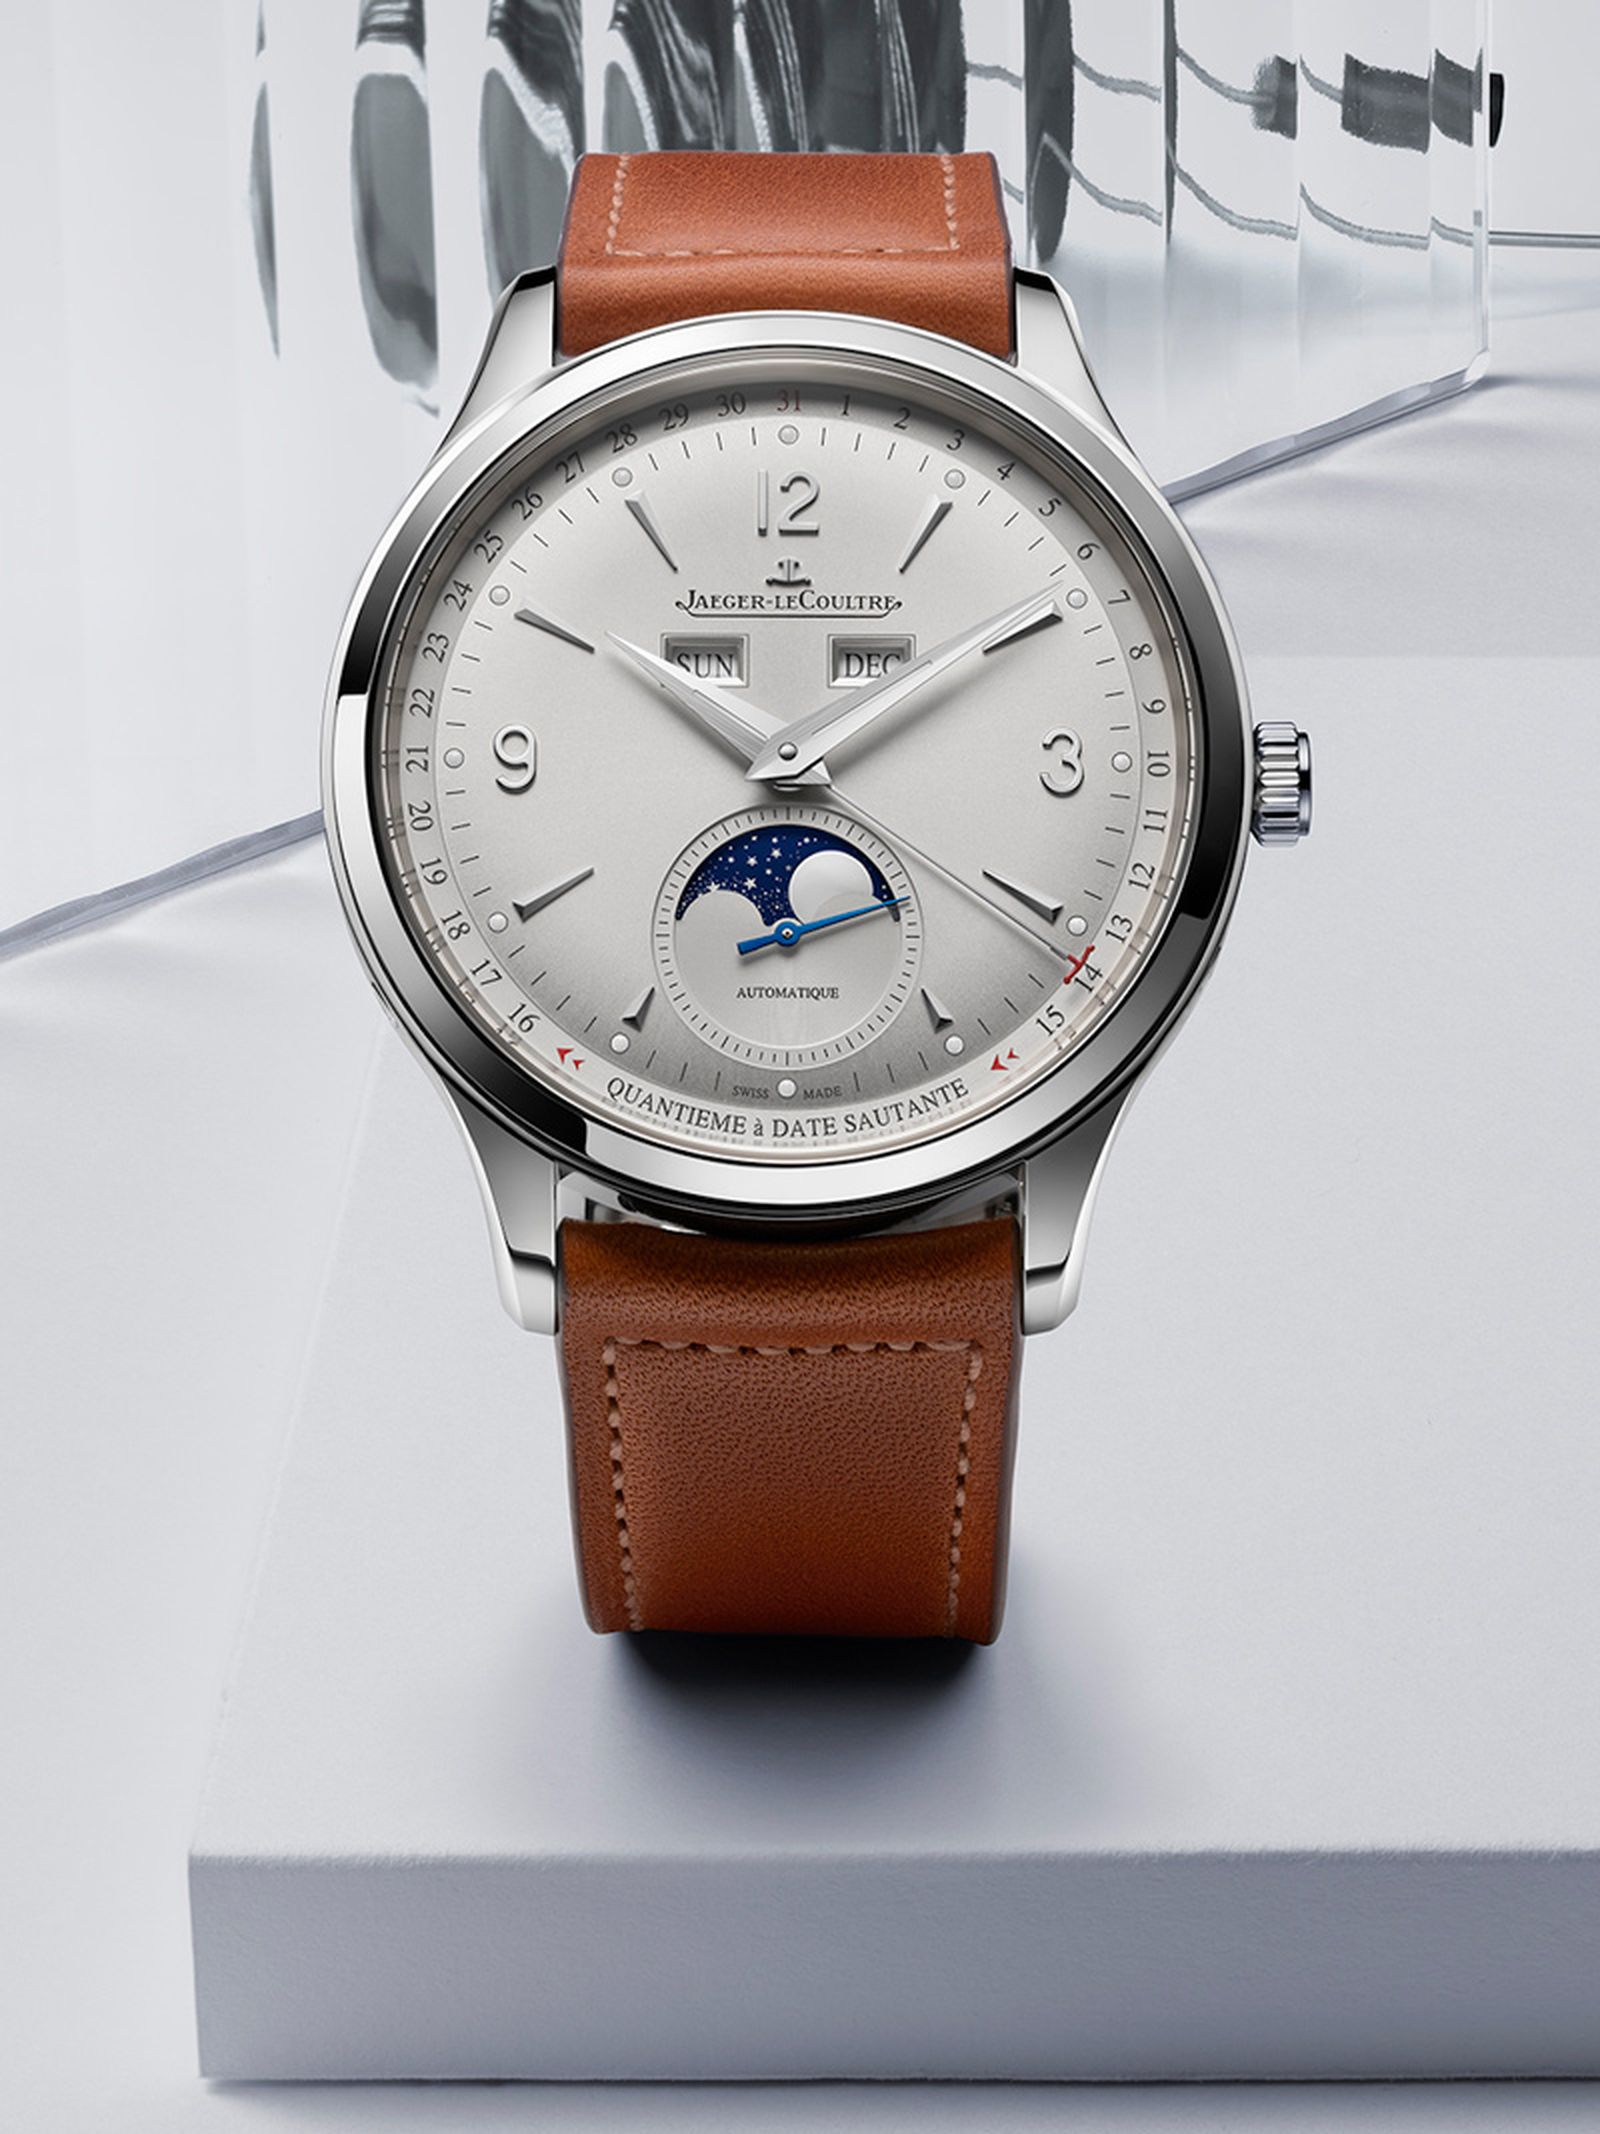 rethink-timing-four-cool-watches-watchesandwonders-com-01